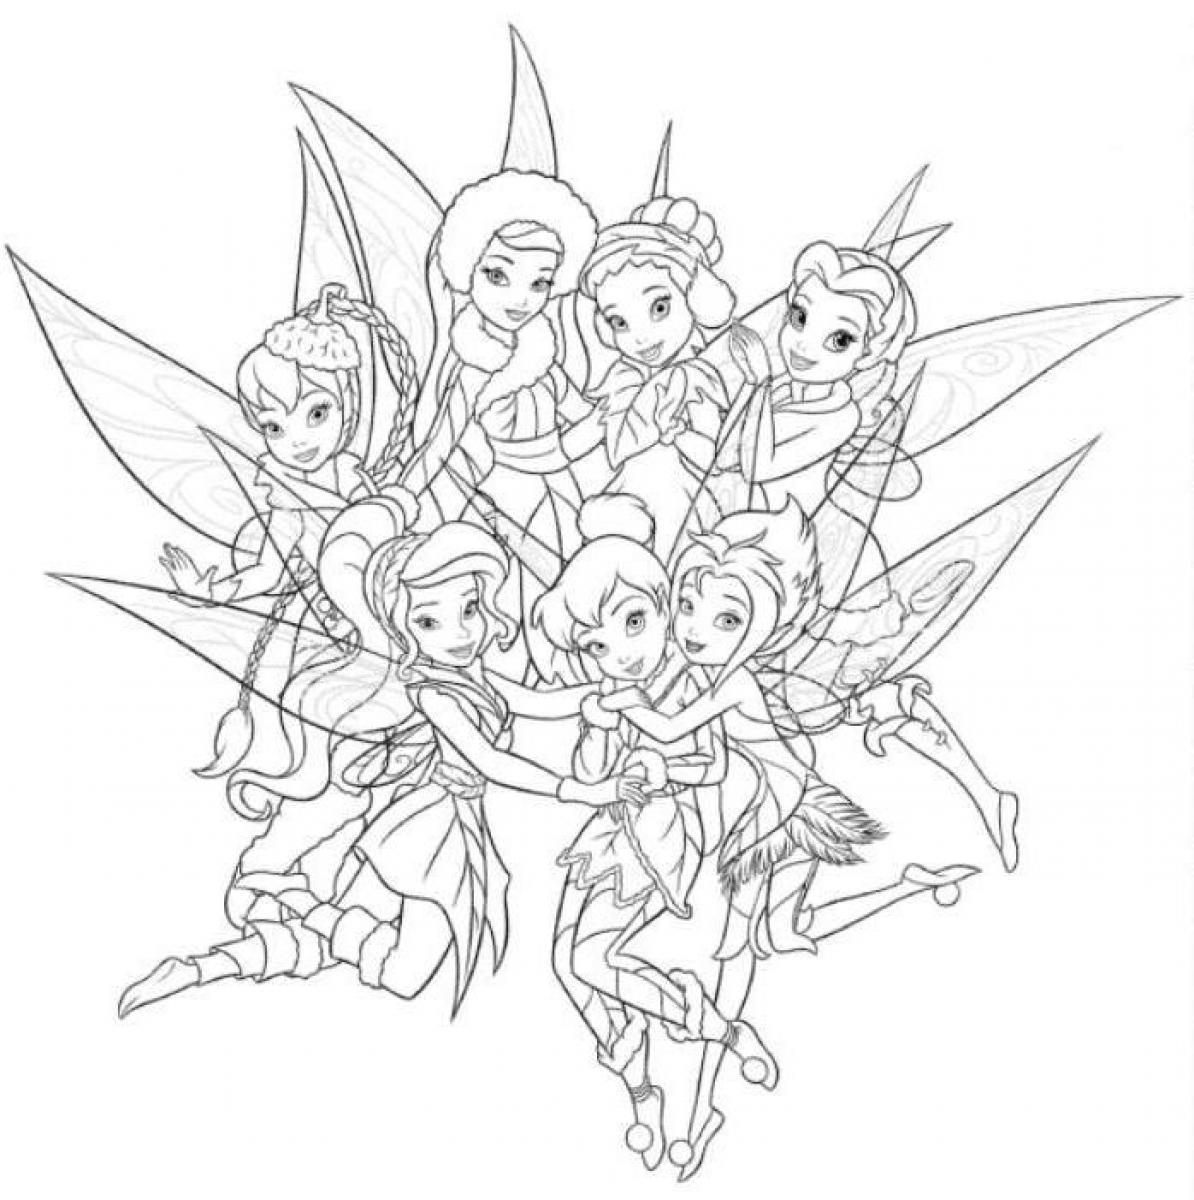 Tinkerbell And Periwinkle Coloring Pages at GetDrawings ...